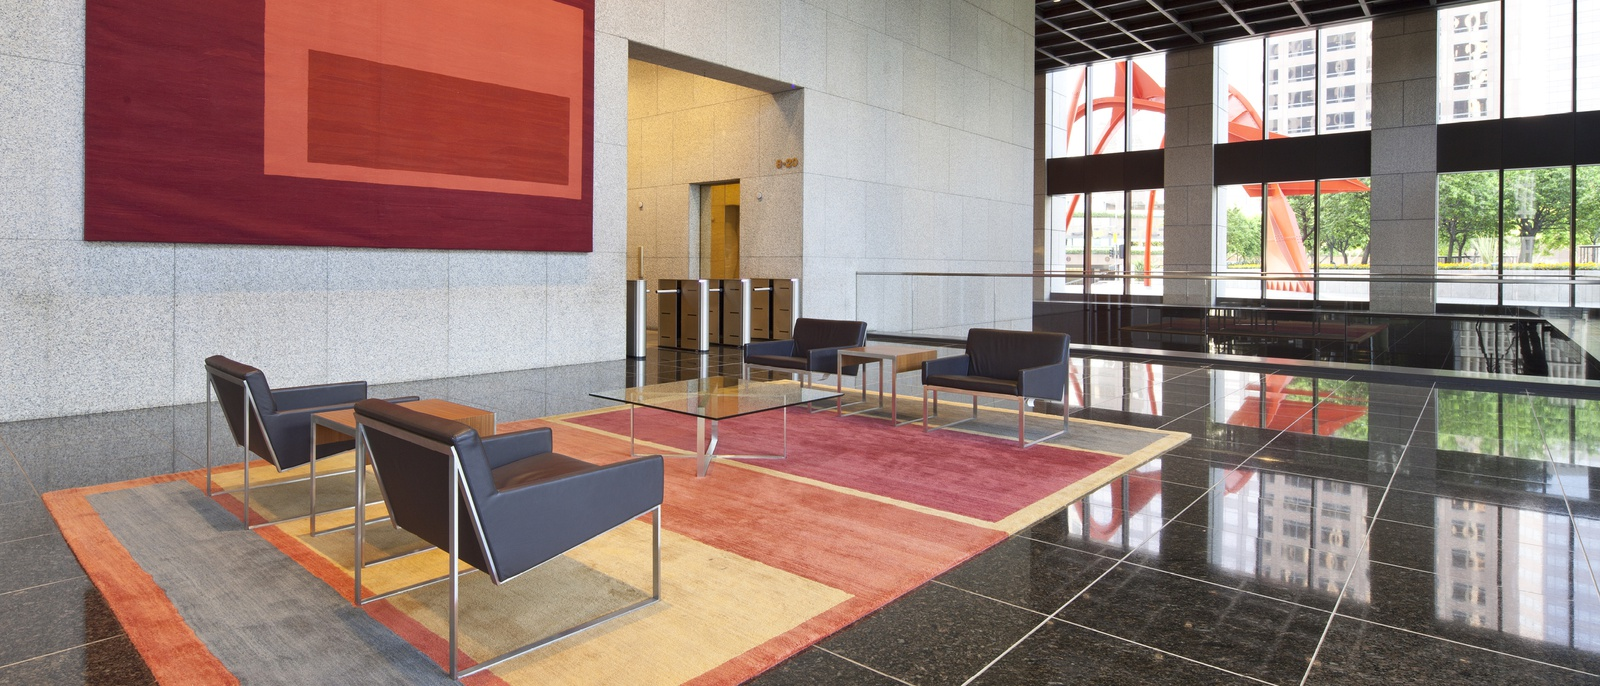 Lobby with tiled black floor, large windows, and seating area,